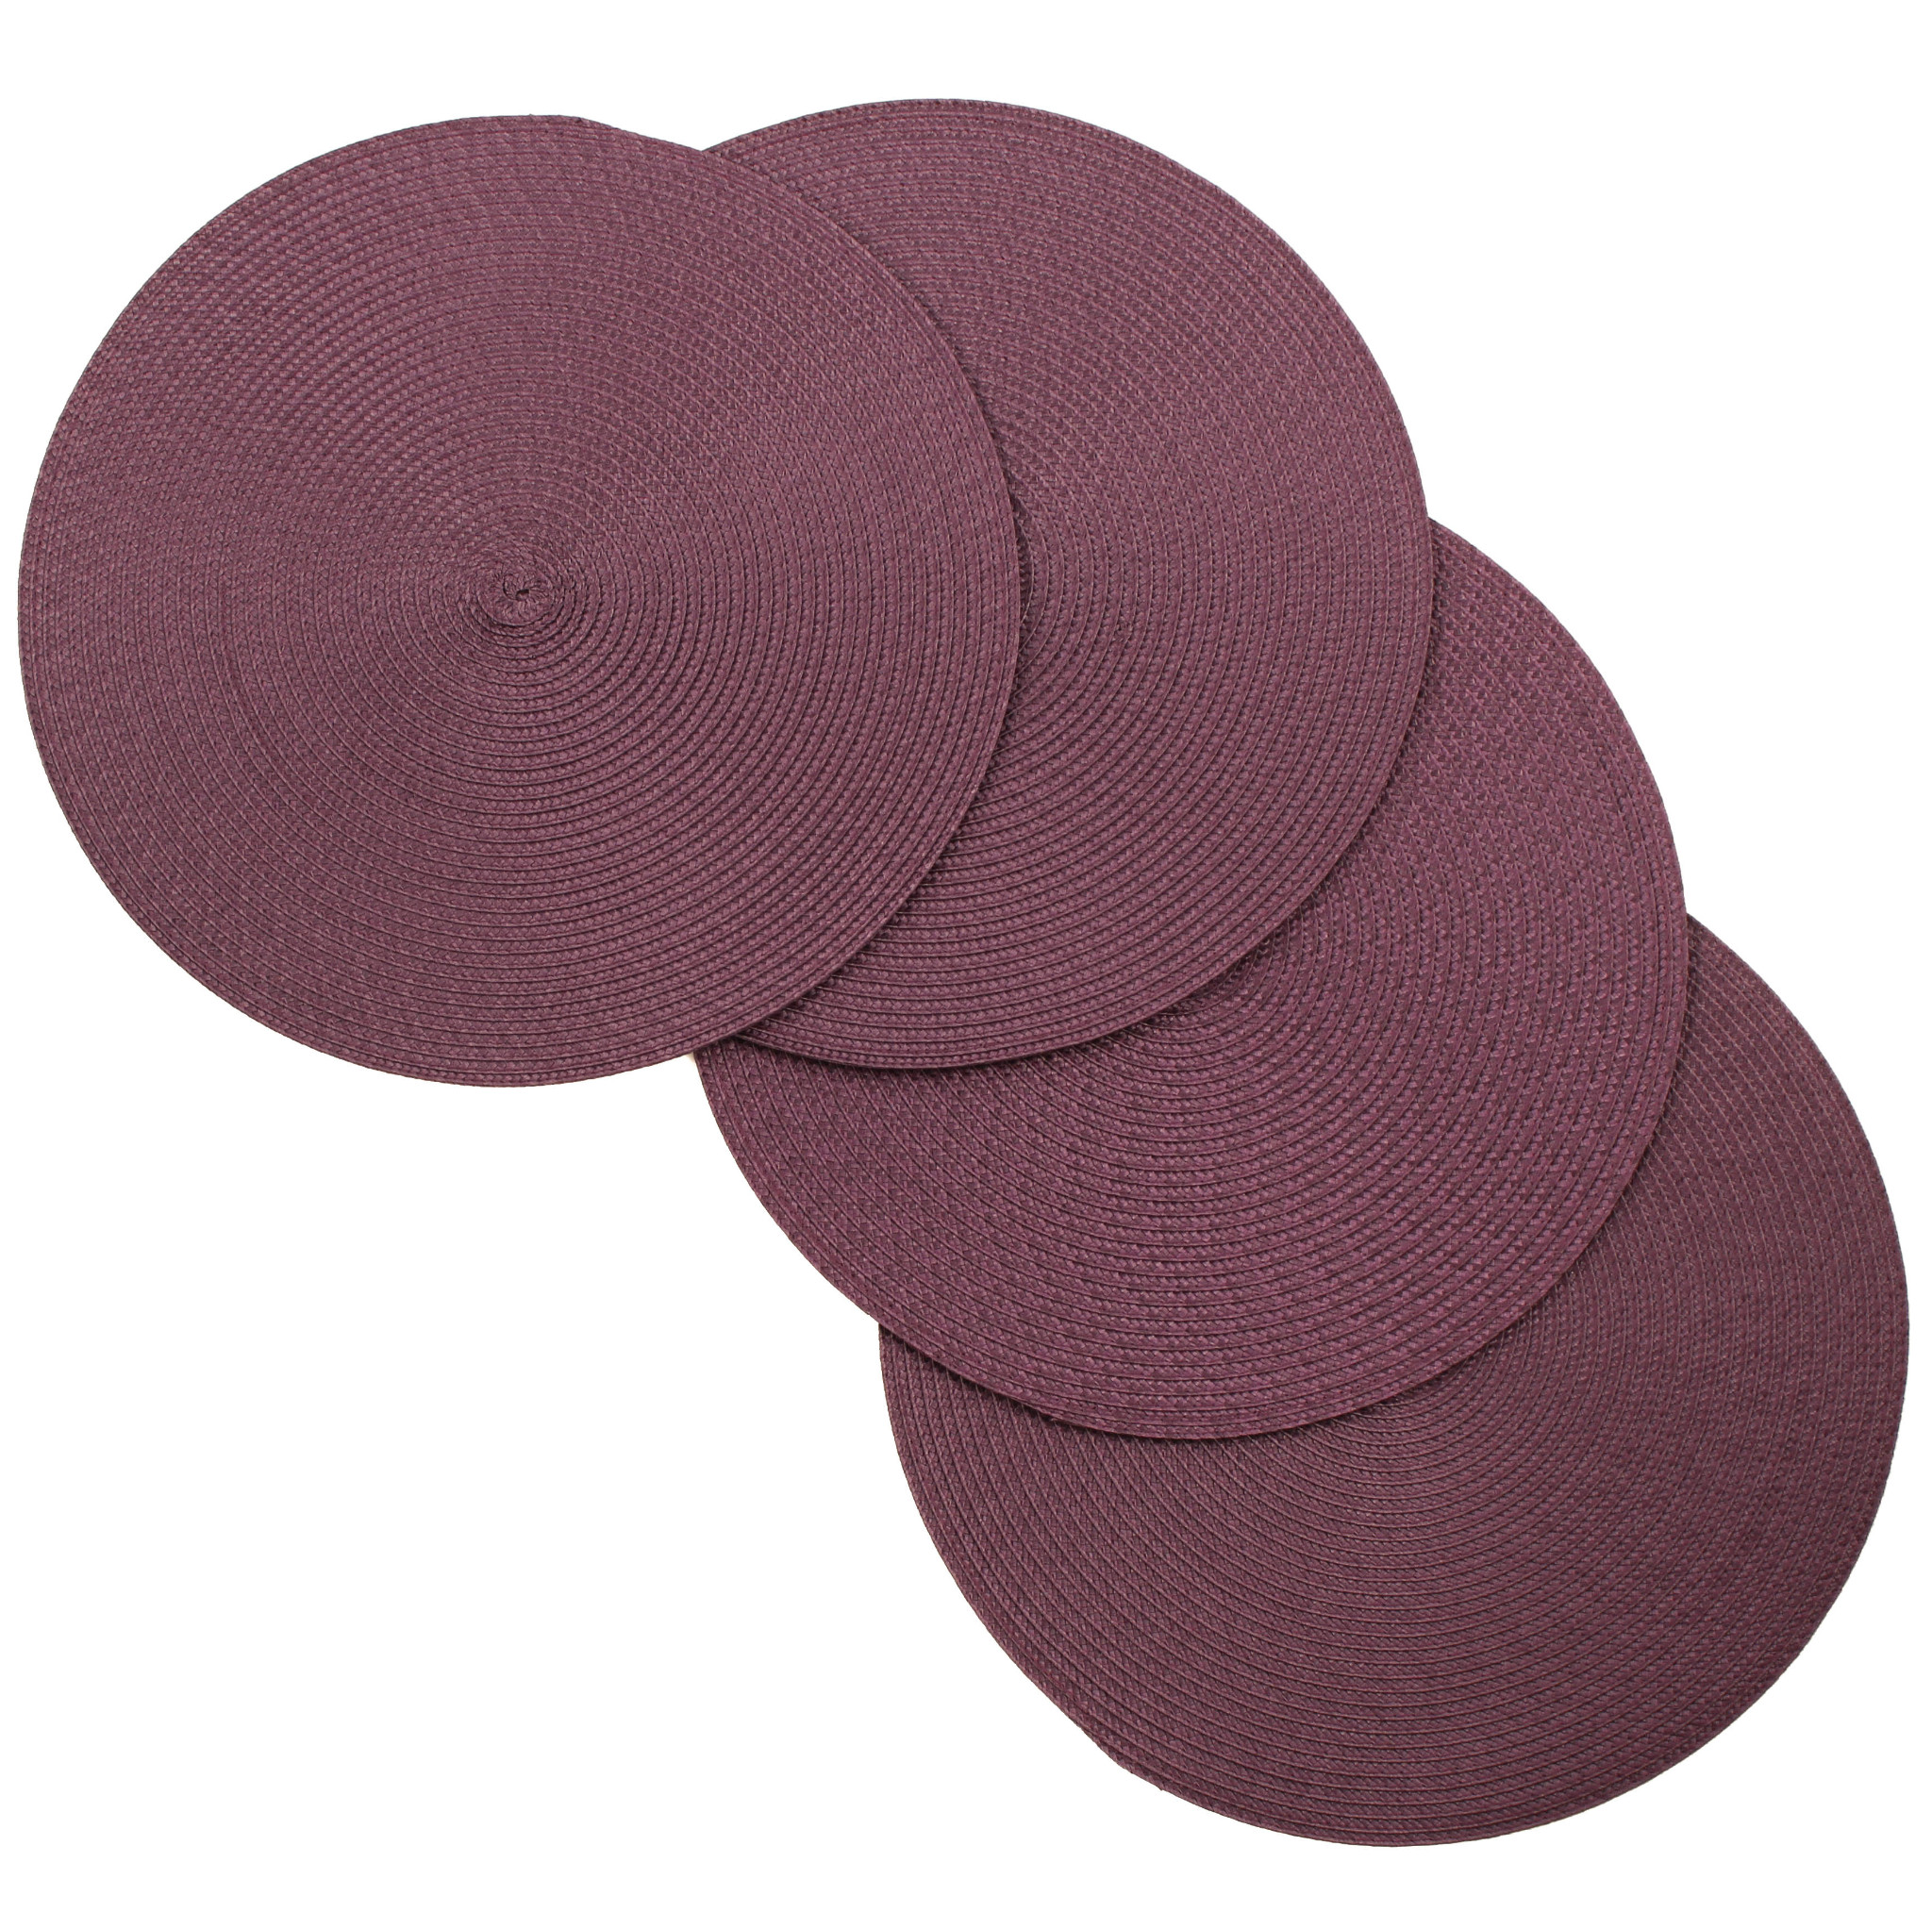 Vienna Woven Spiral Table Placemats 15 Inches Round Set of 4 Non-Slip Dining & Kitchen Table Mats Purple